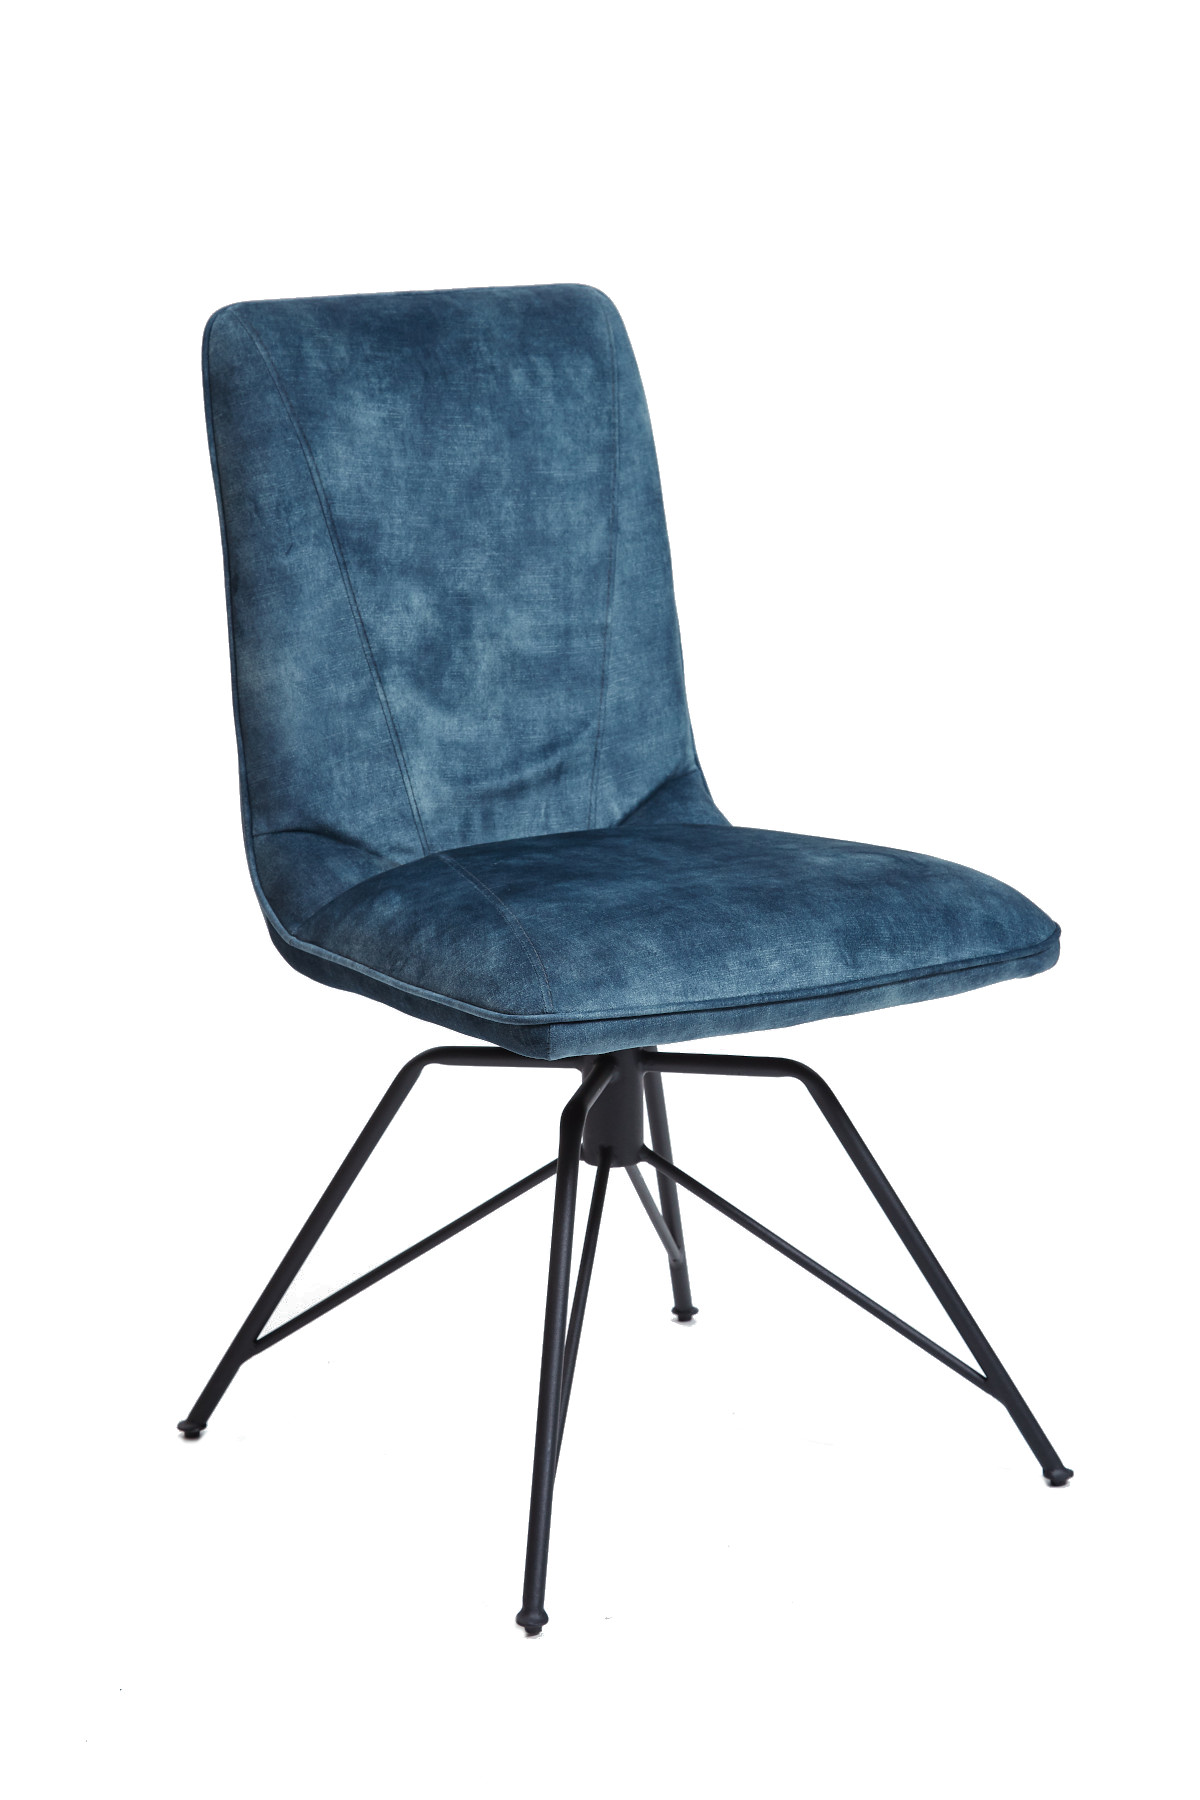 Carter Teal Dining Chair